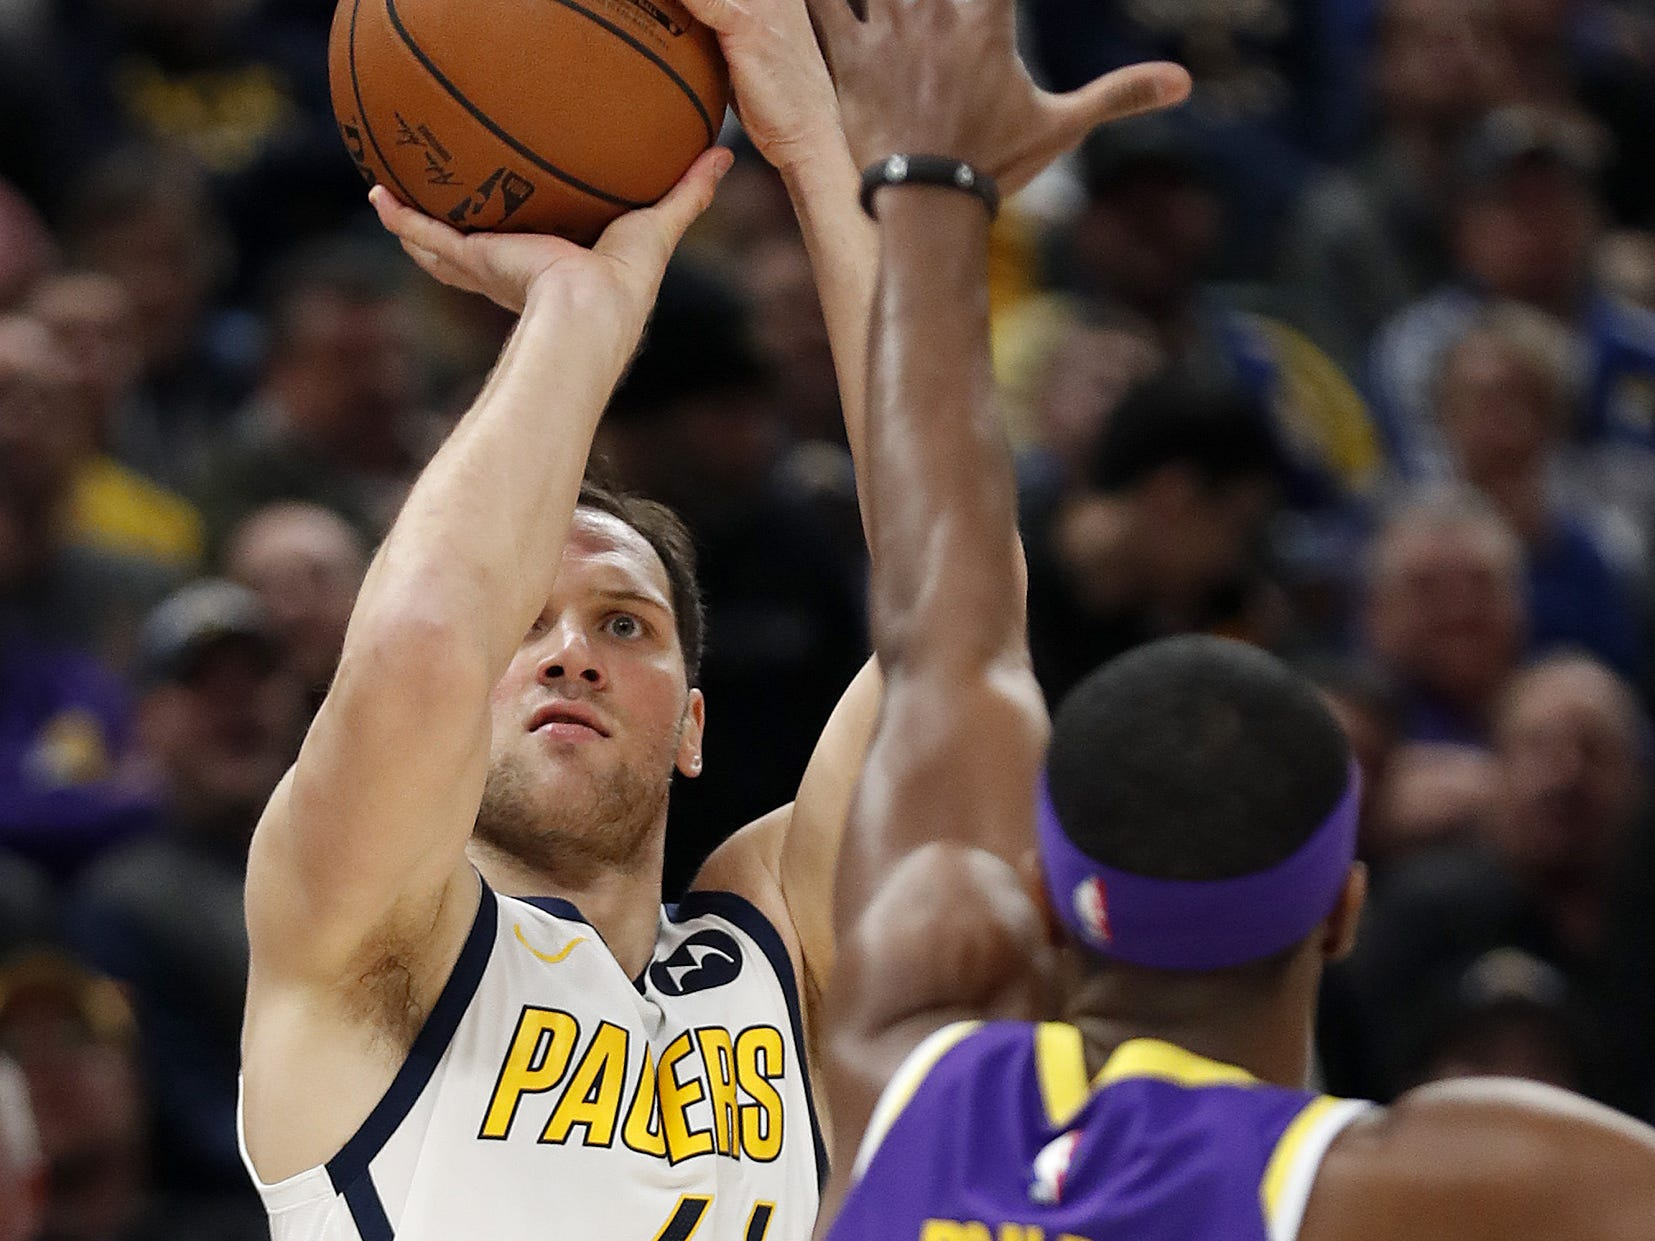 Indiana Pacers forward Bojan Bogdanovic (44) shoots a three-pointer over Los Angeles Lakers guard Rajon Rondo (9) in the first half of their game at Bankers Life Fieldouse on Tuesday, Feb. 5, 2019.